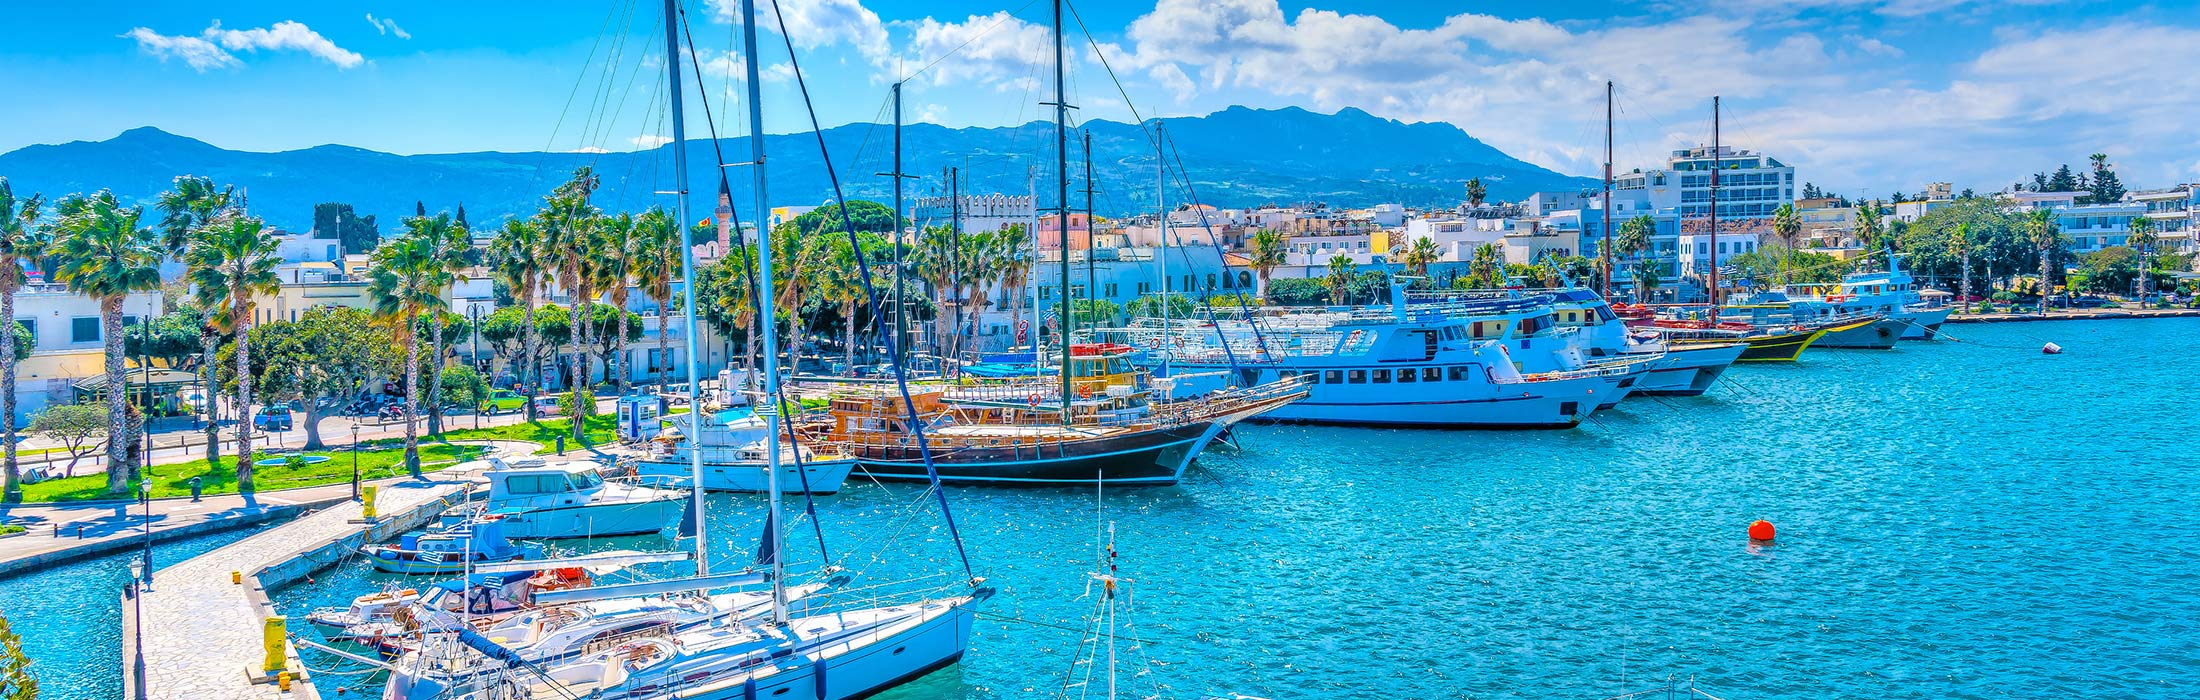 top yacht charter destinations mediterranean greece dodecanese north aegean islands kos main slider 2